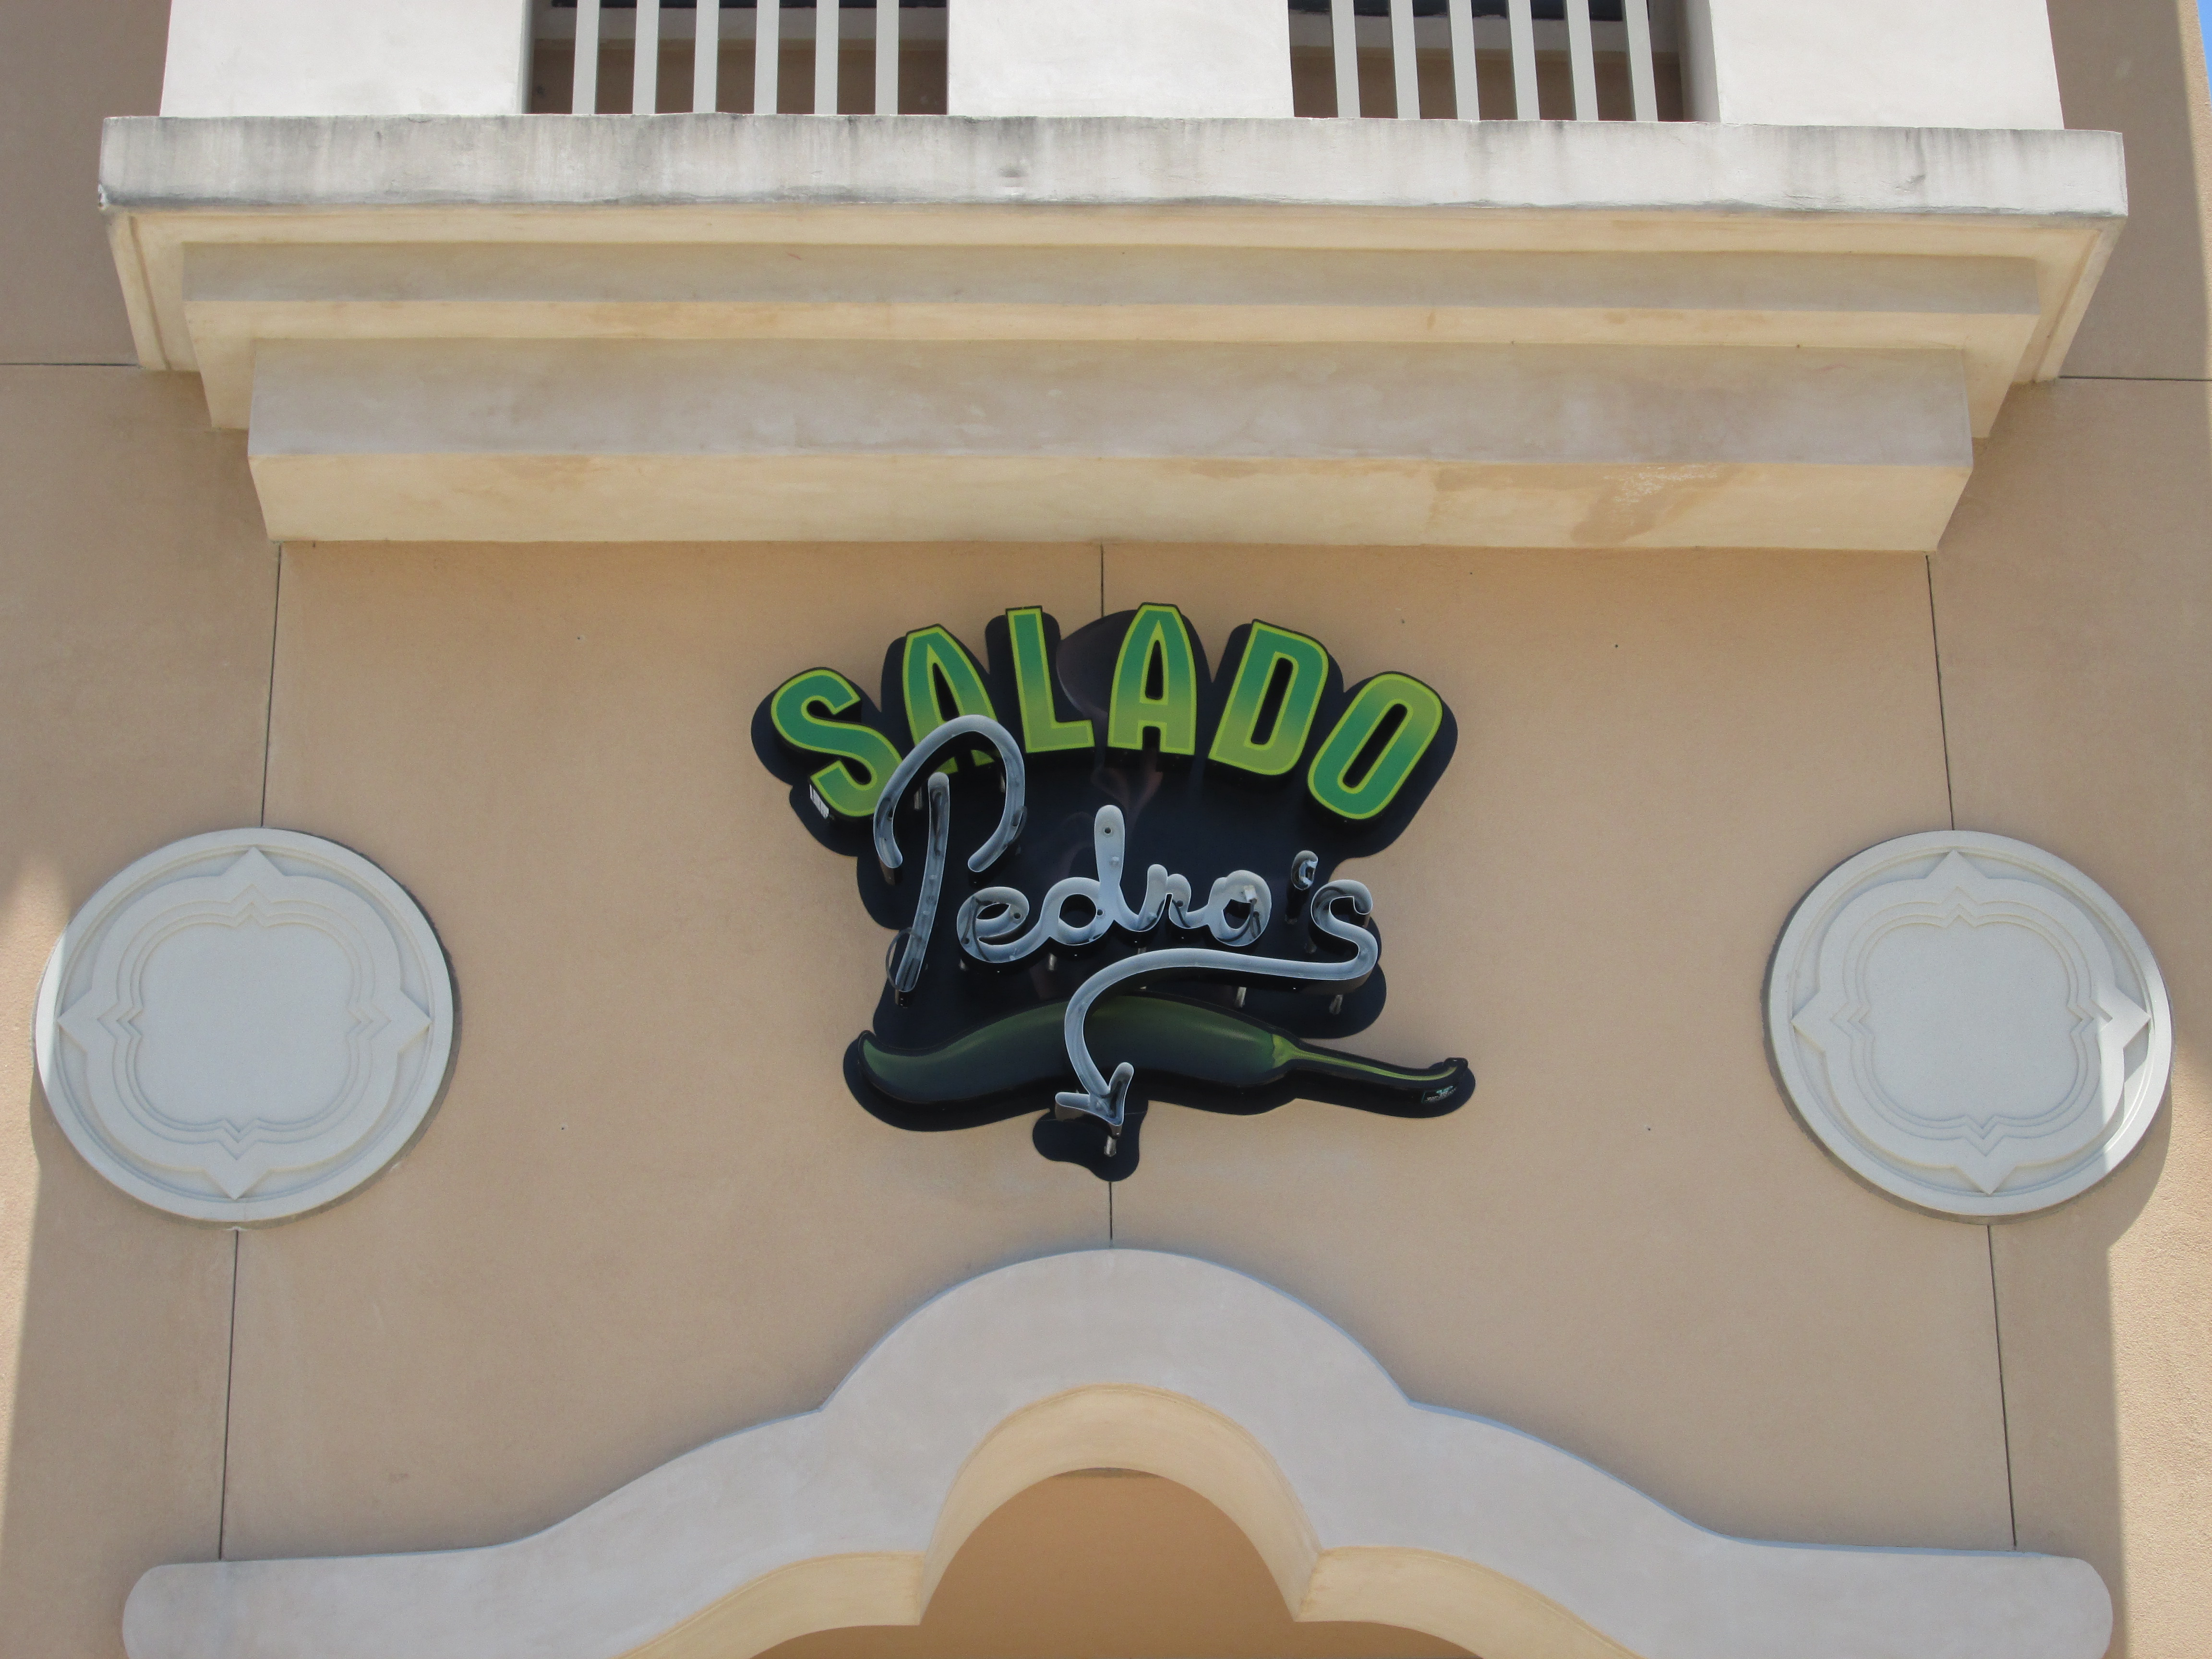 Salado Pedro's, Estero, FL by Lee Designs